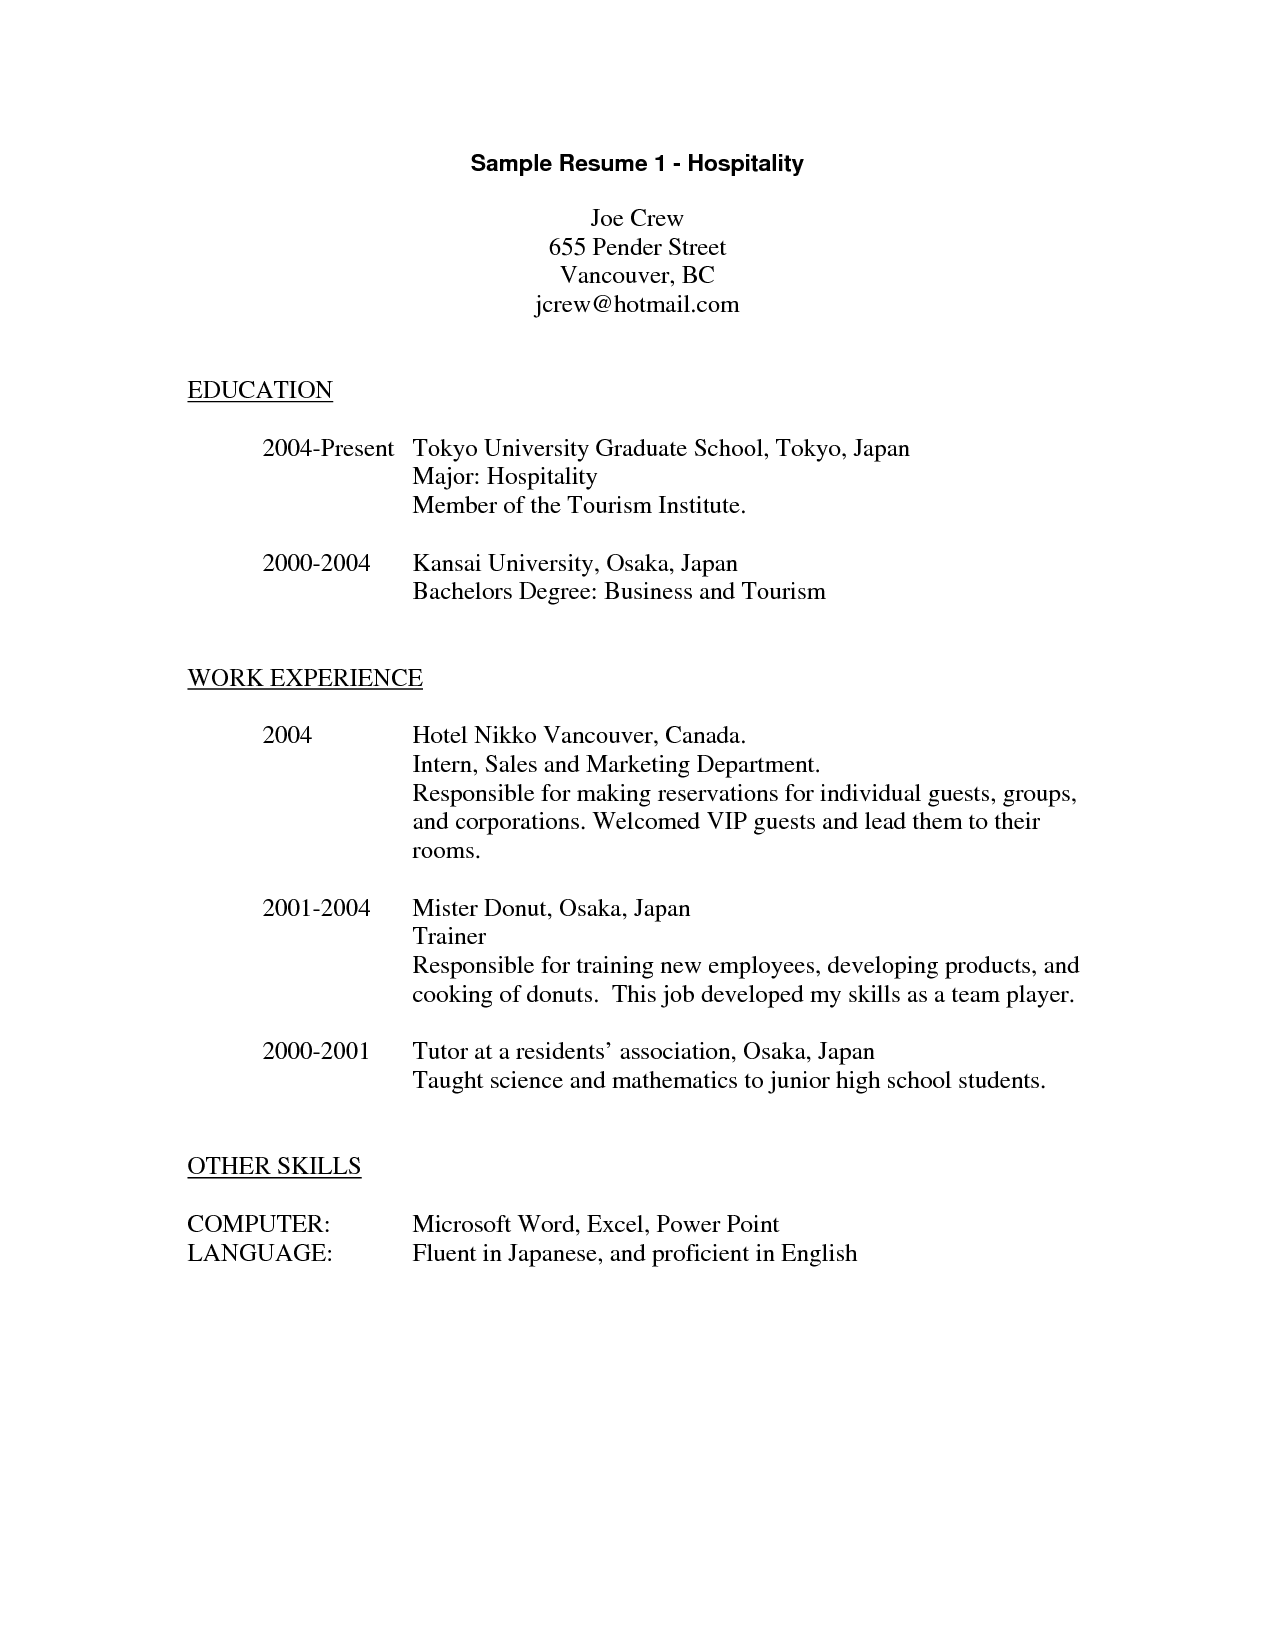 Writing An Objective For Resume Sample Resume For Hospitality Industry Sample Resume For